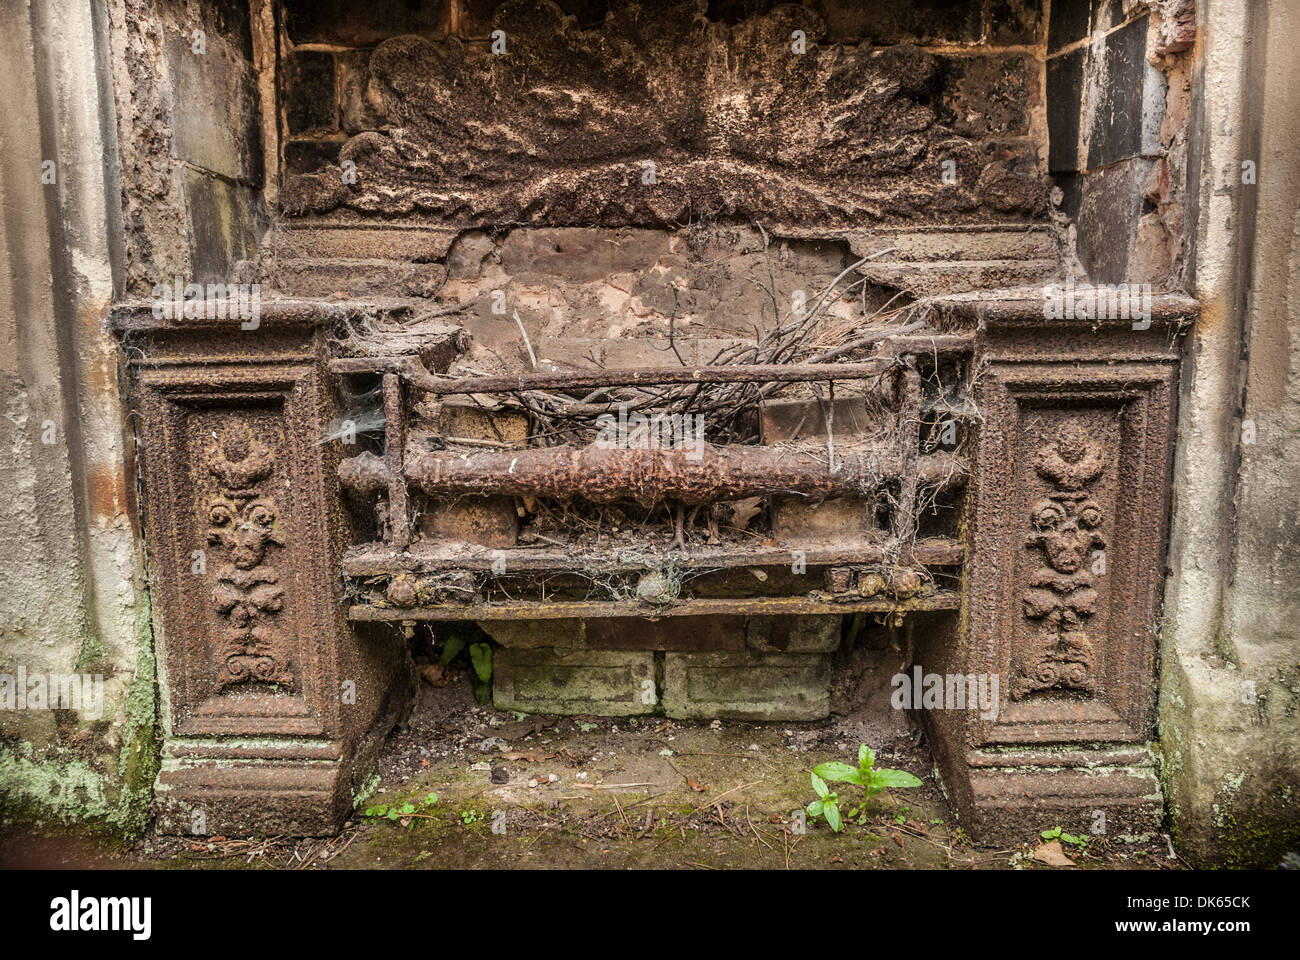 old cast iron fireplace rusty and abandoned stock photo royalty